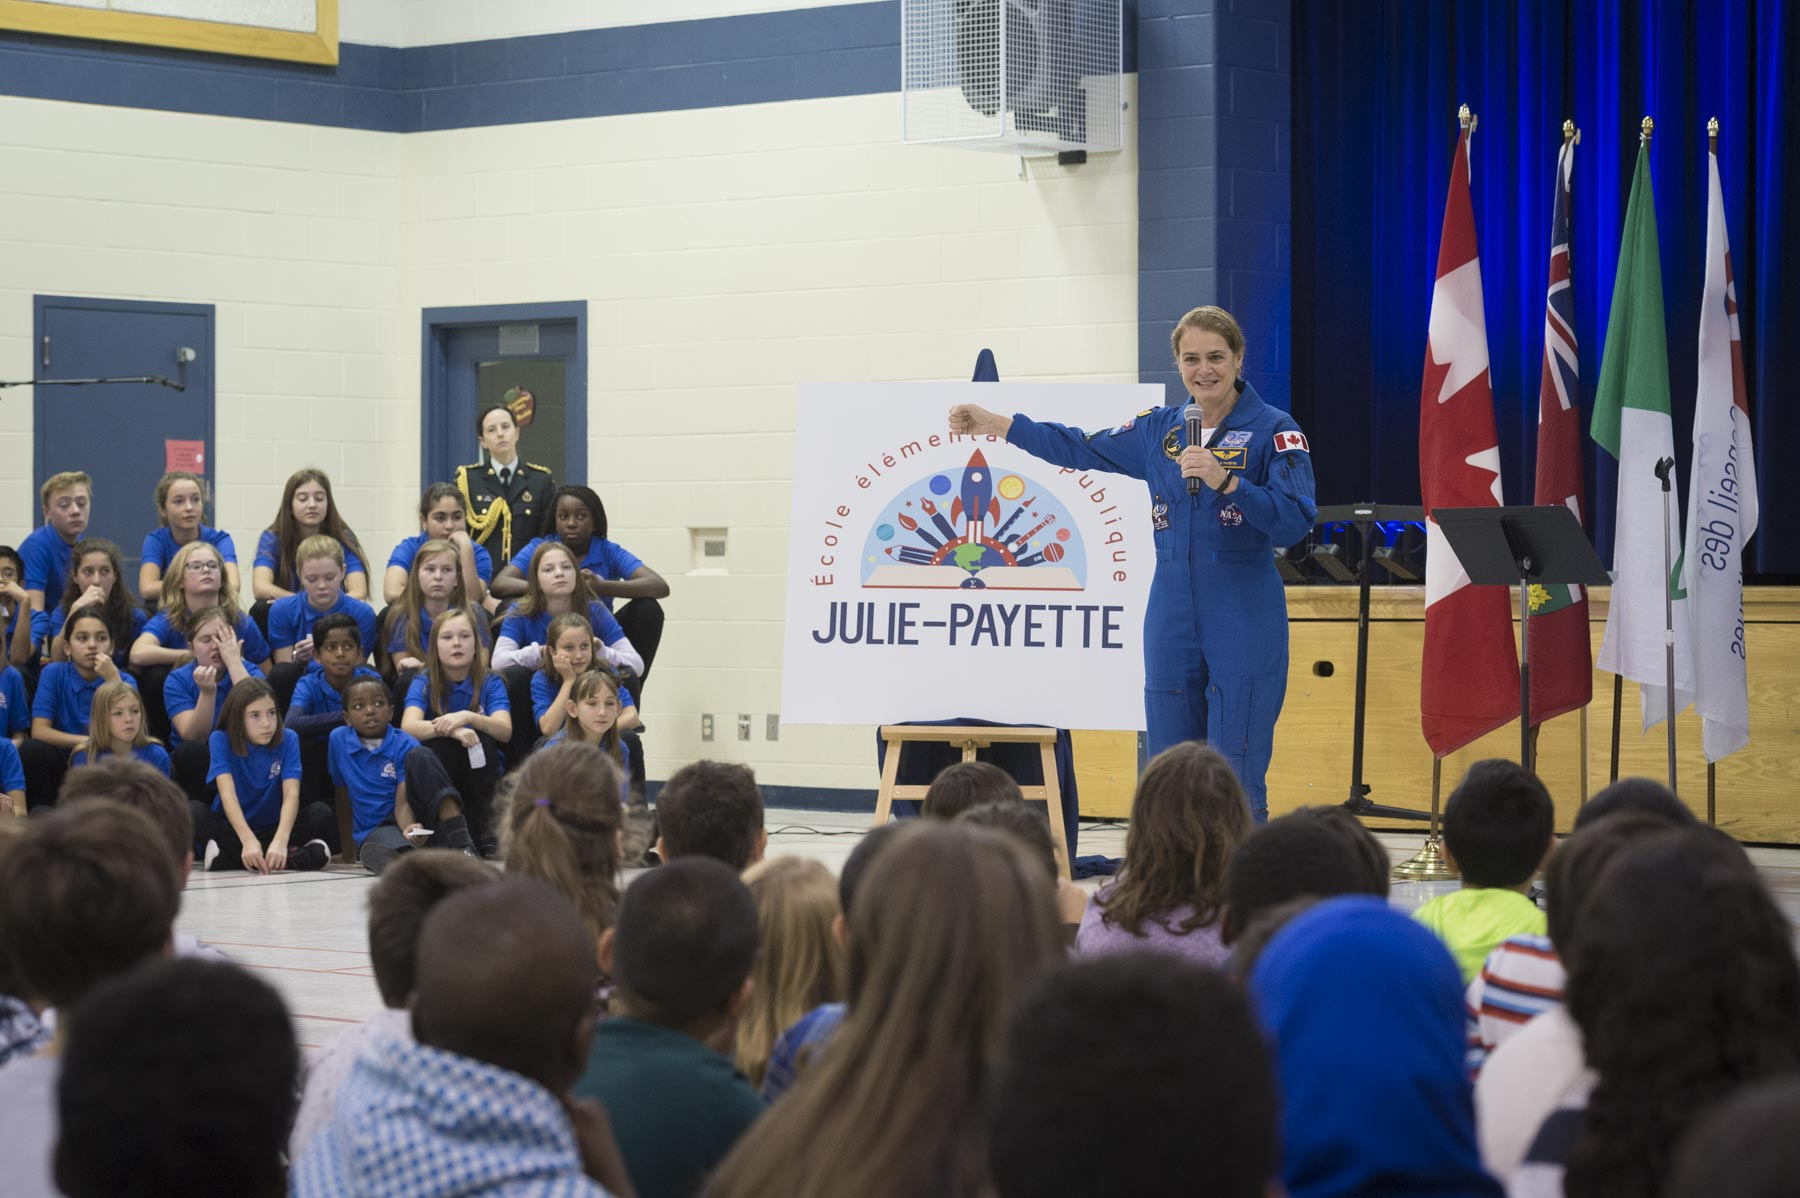 Her Excellency addressed the students and representatives from the school and school board.